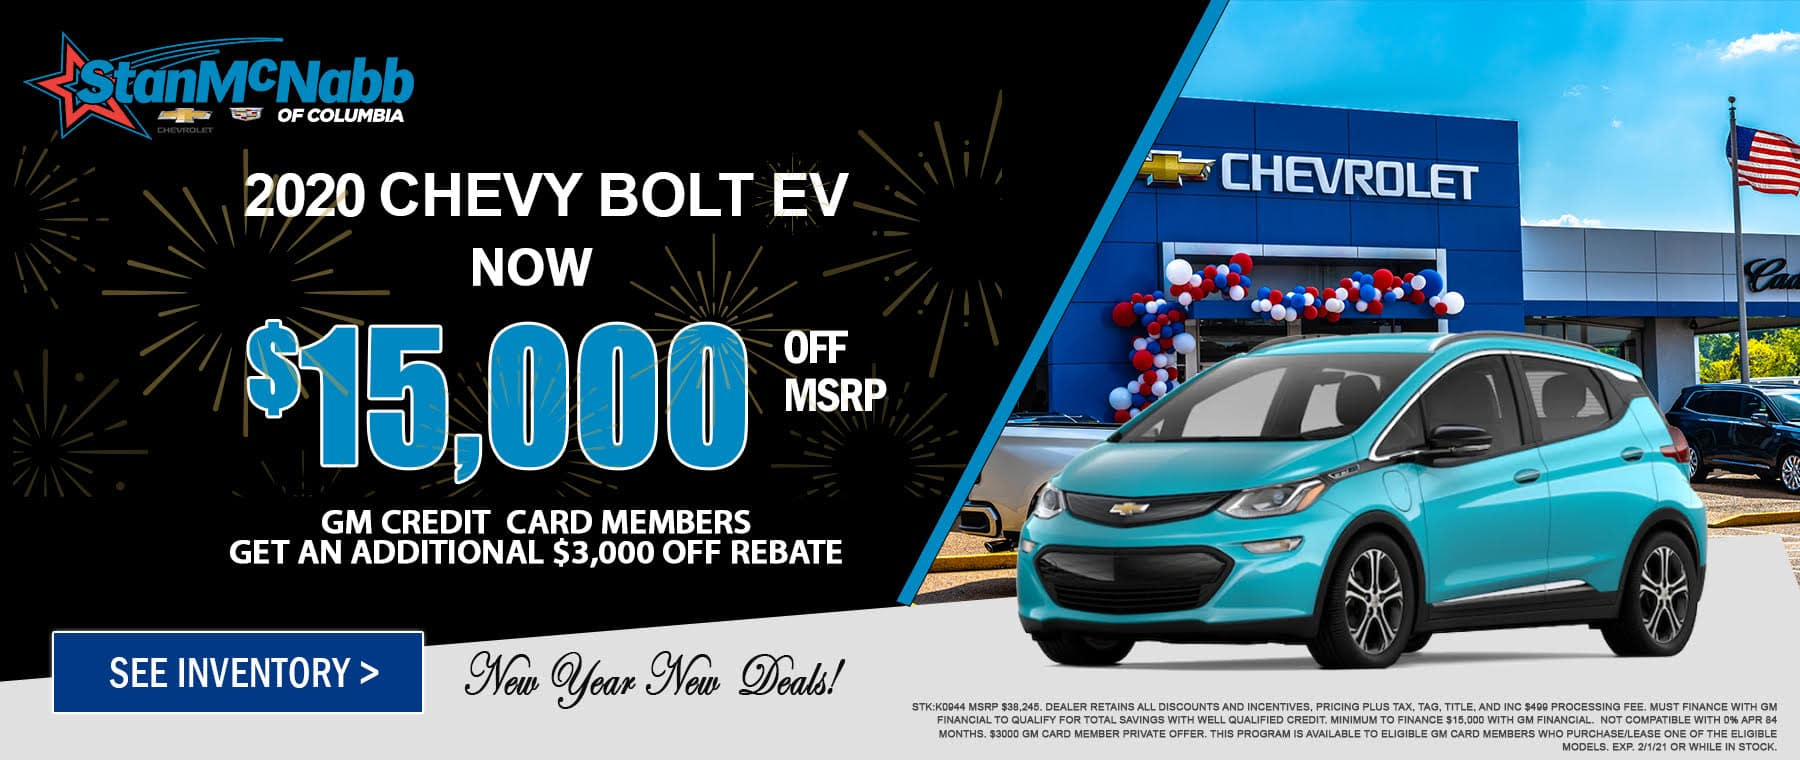 Special on the 2020 Chevy Bolt at Stan McNabb Chevrolet of Columbia